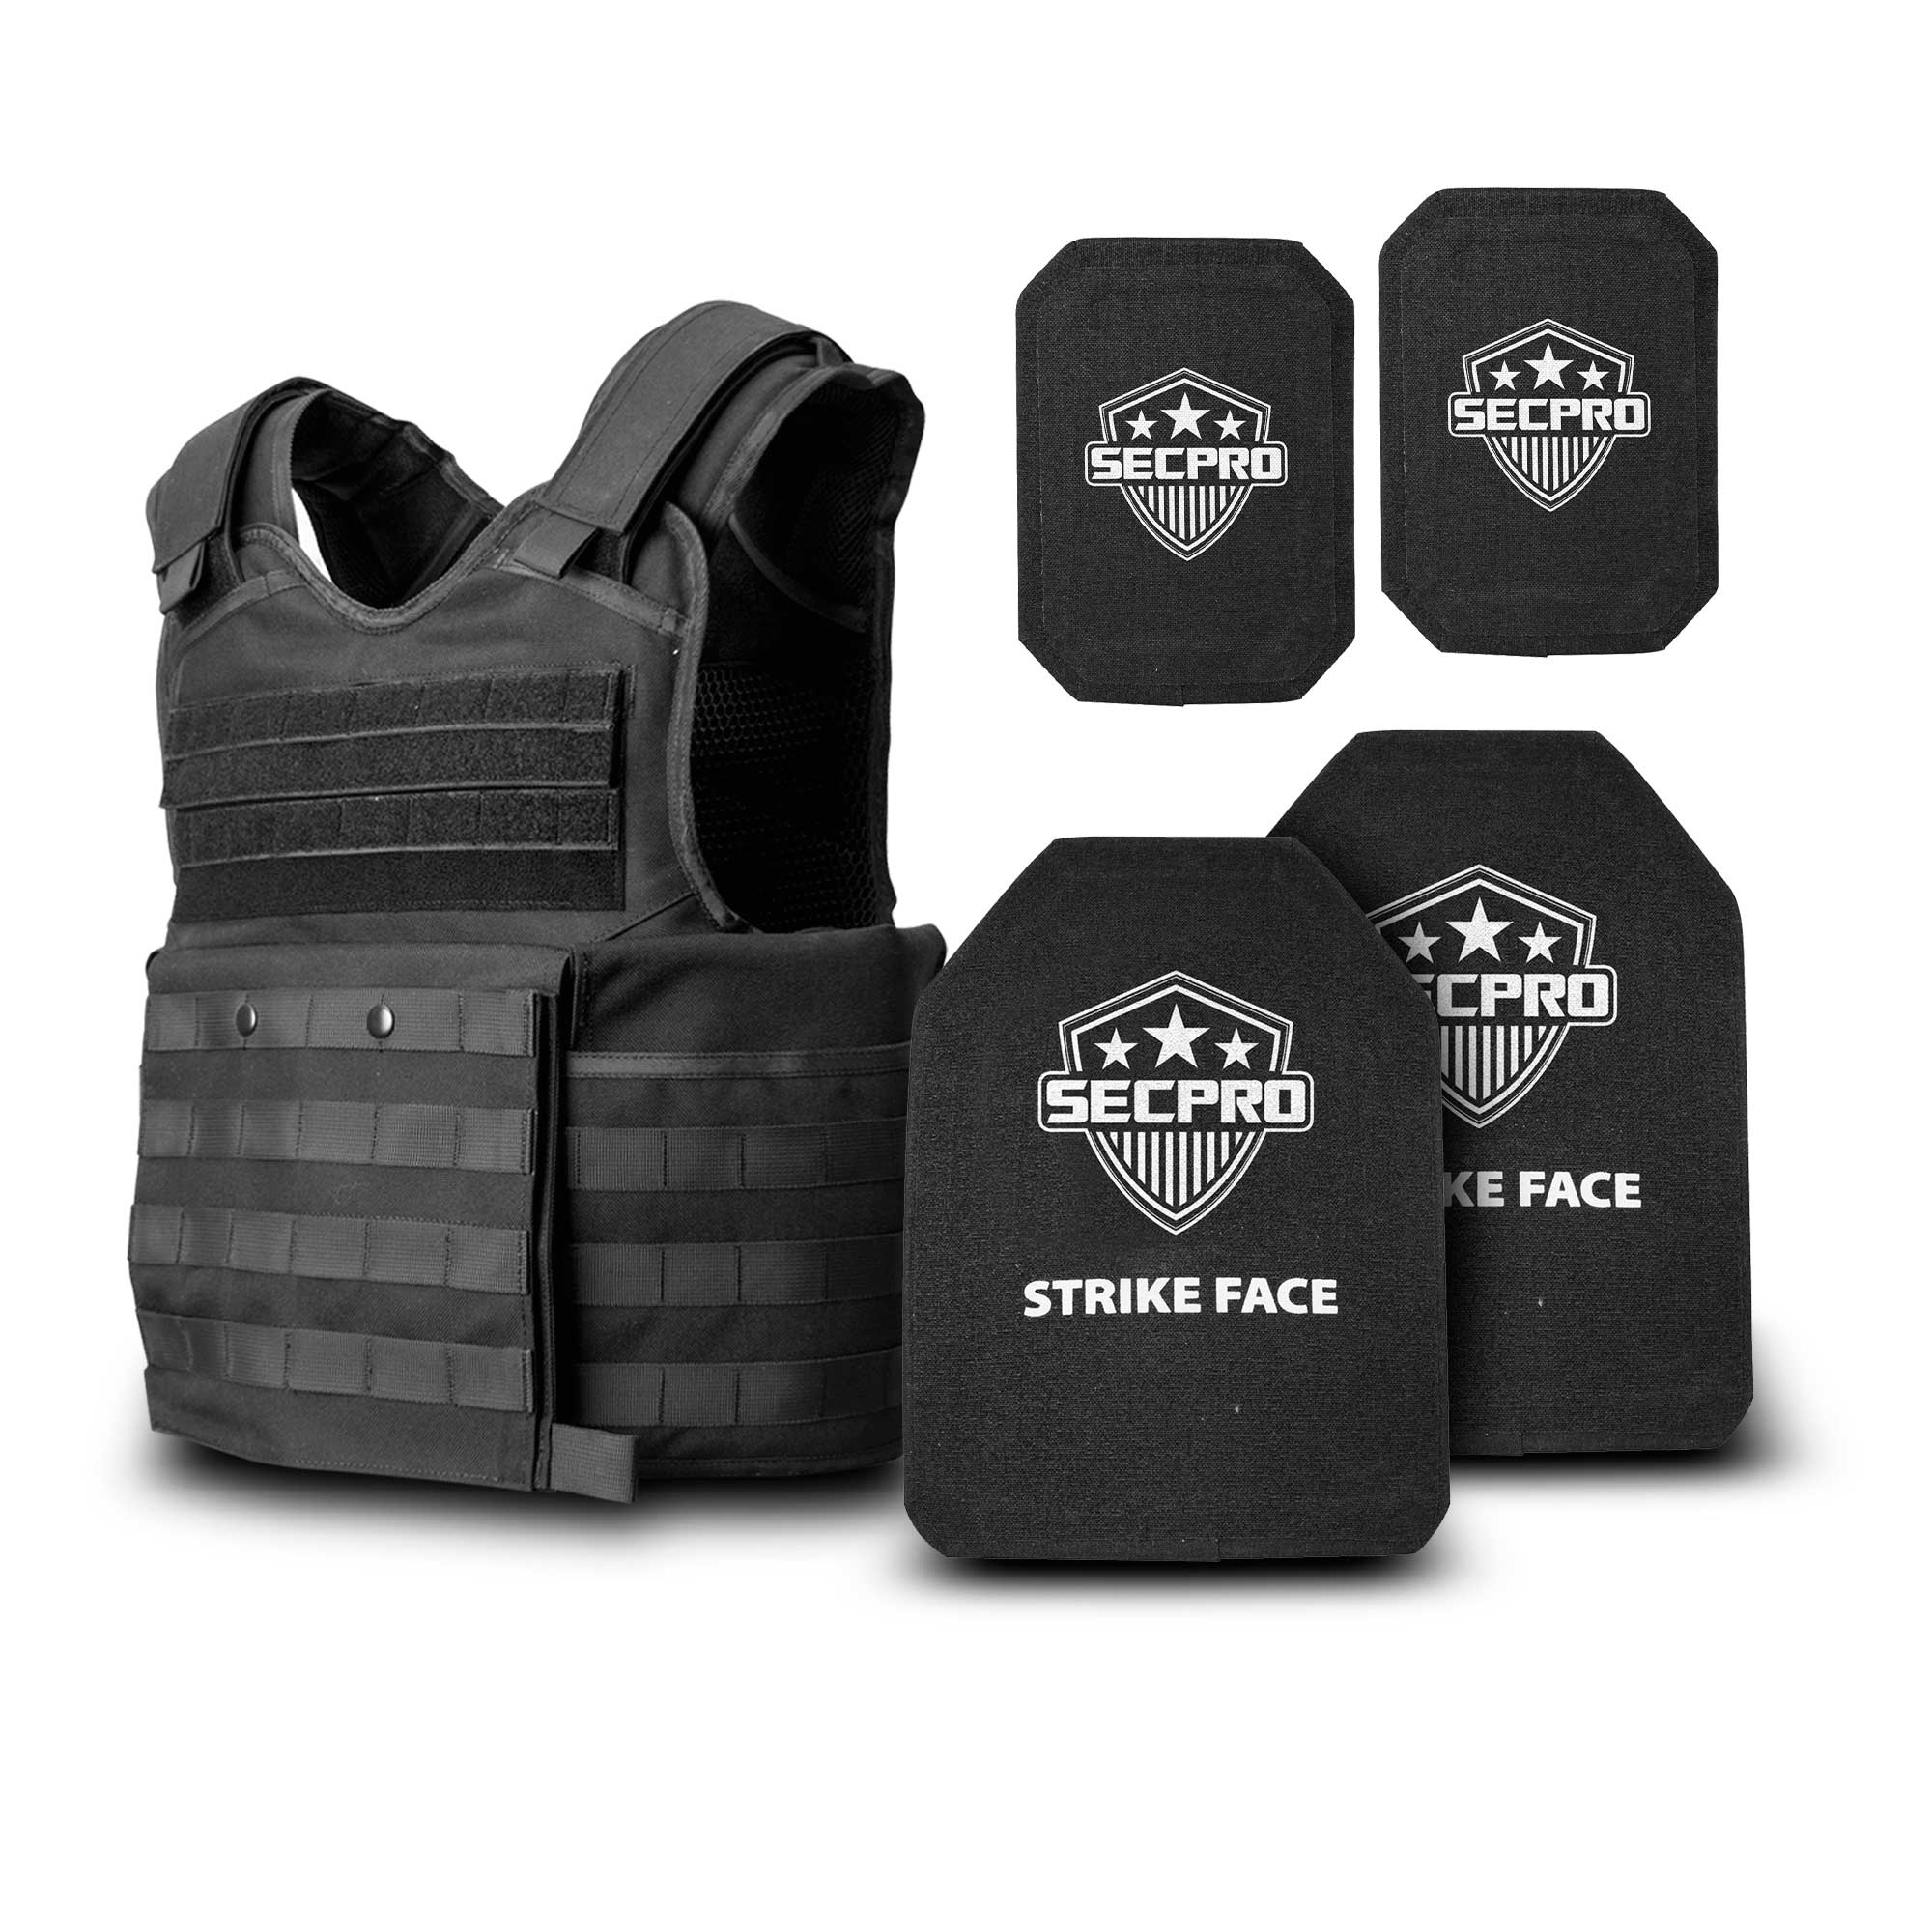 SecPro Gladiator Special Body Armor Bundle